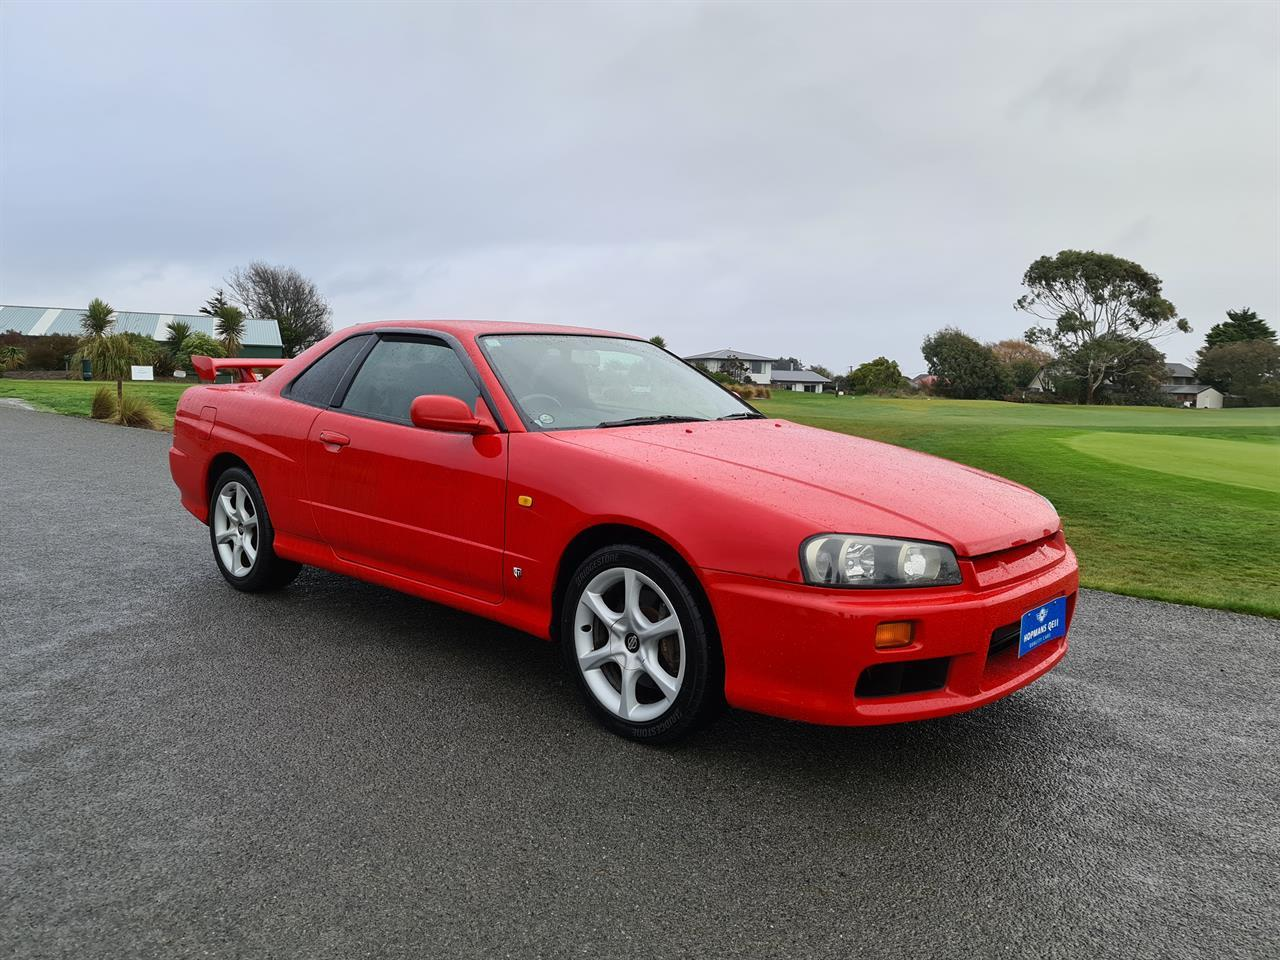 image-0, 2000 Nissan Skyline COUPE 25 GT TURBO at Christchurch